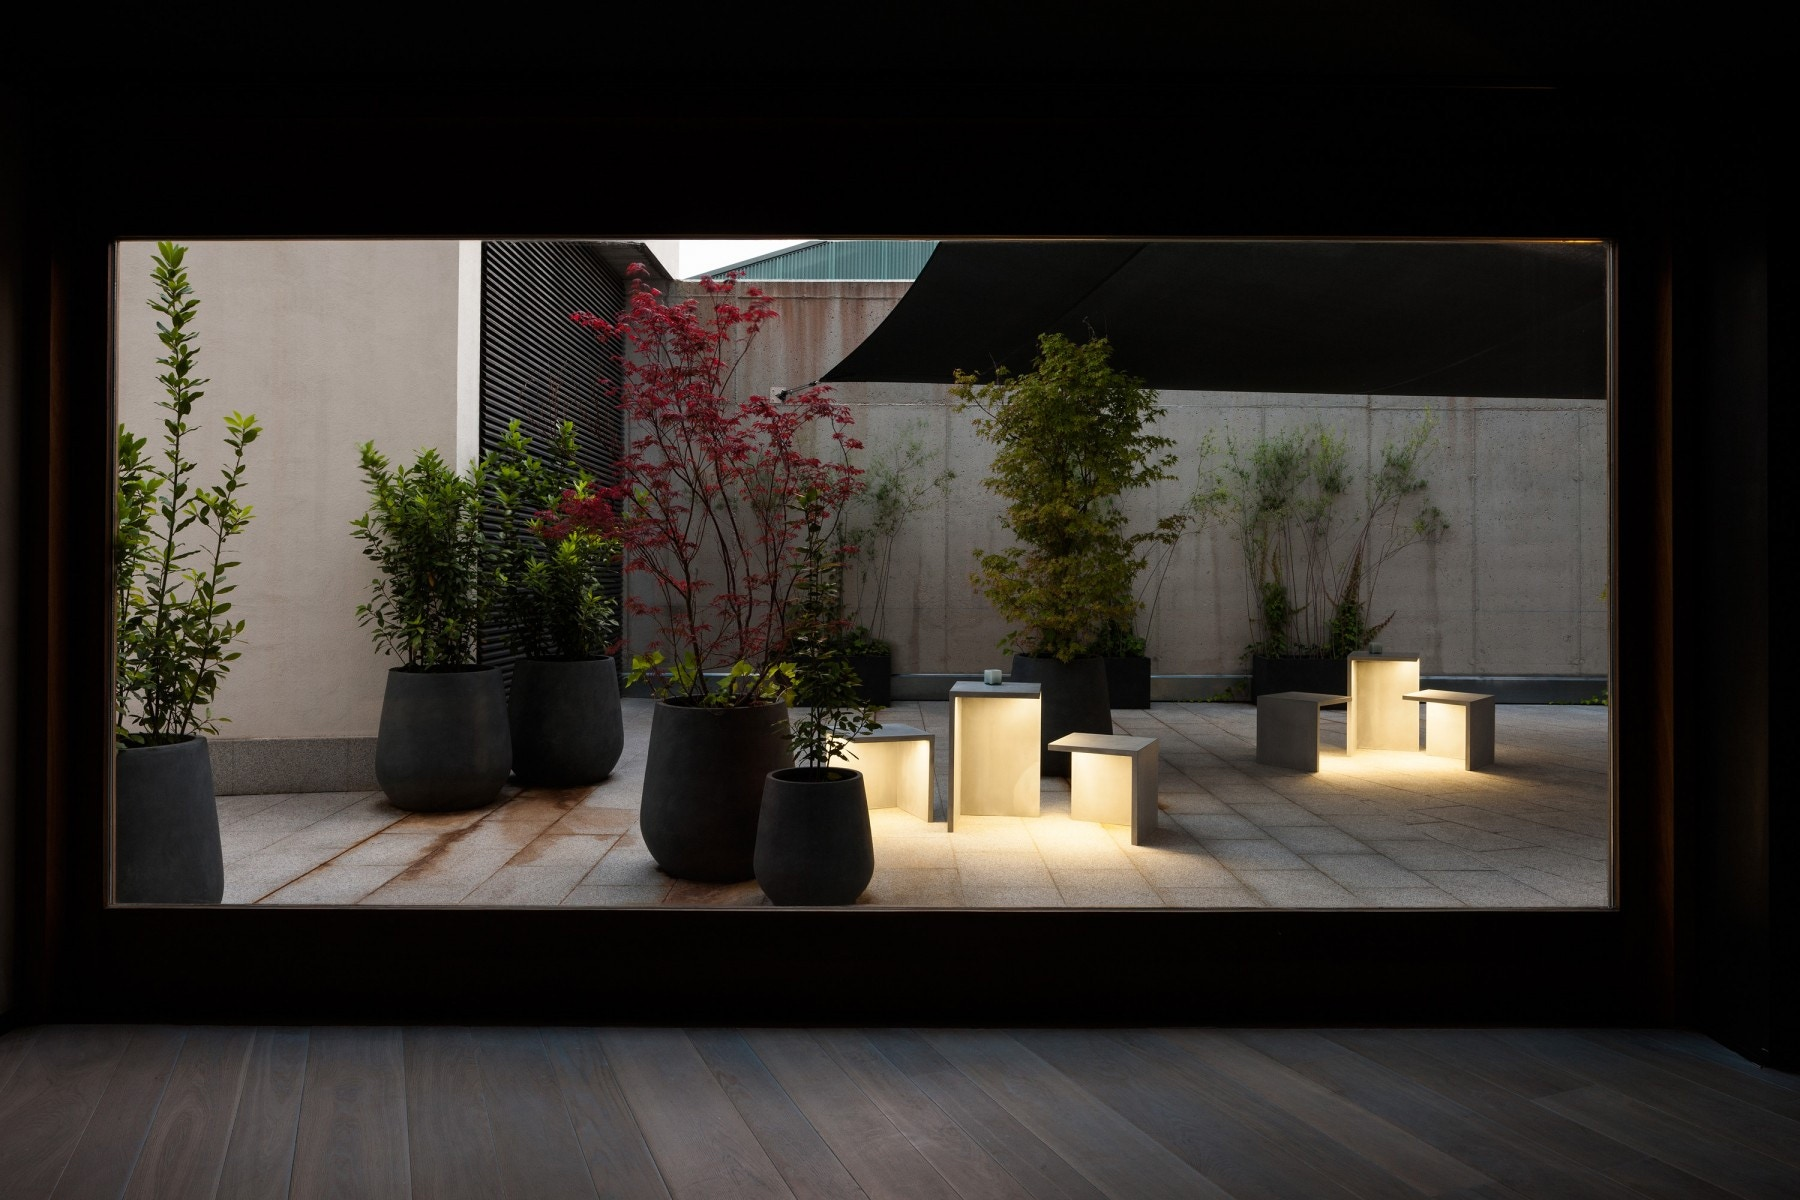 Vibia Empty Outdoor Table Floor Lamp - Modern Planet for Vibia Outdoor Floor Lamp  55dqh